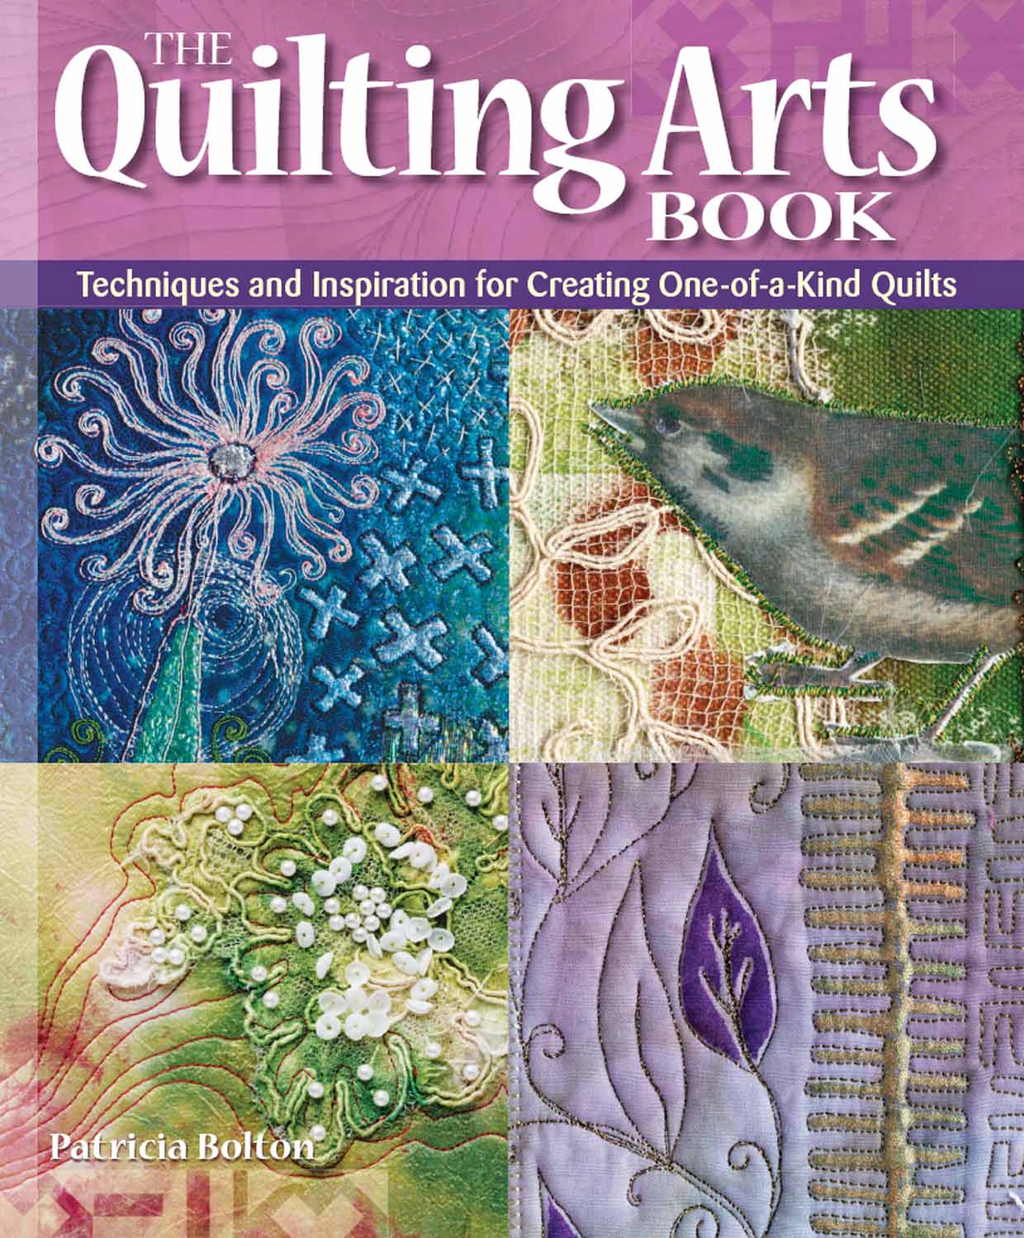 The Quilting Arts Book Techniques and Inspiration for Creating One-of-a-Kind Quilts